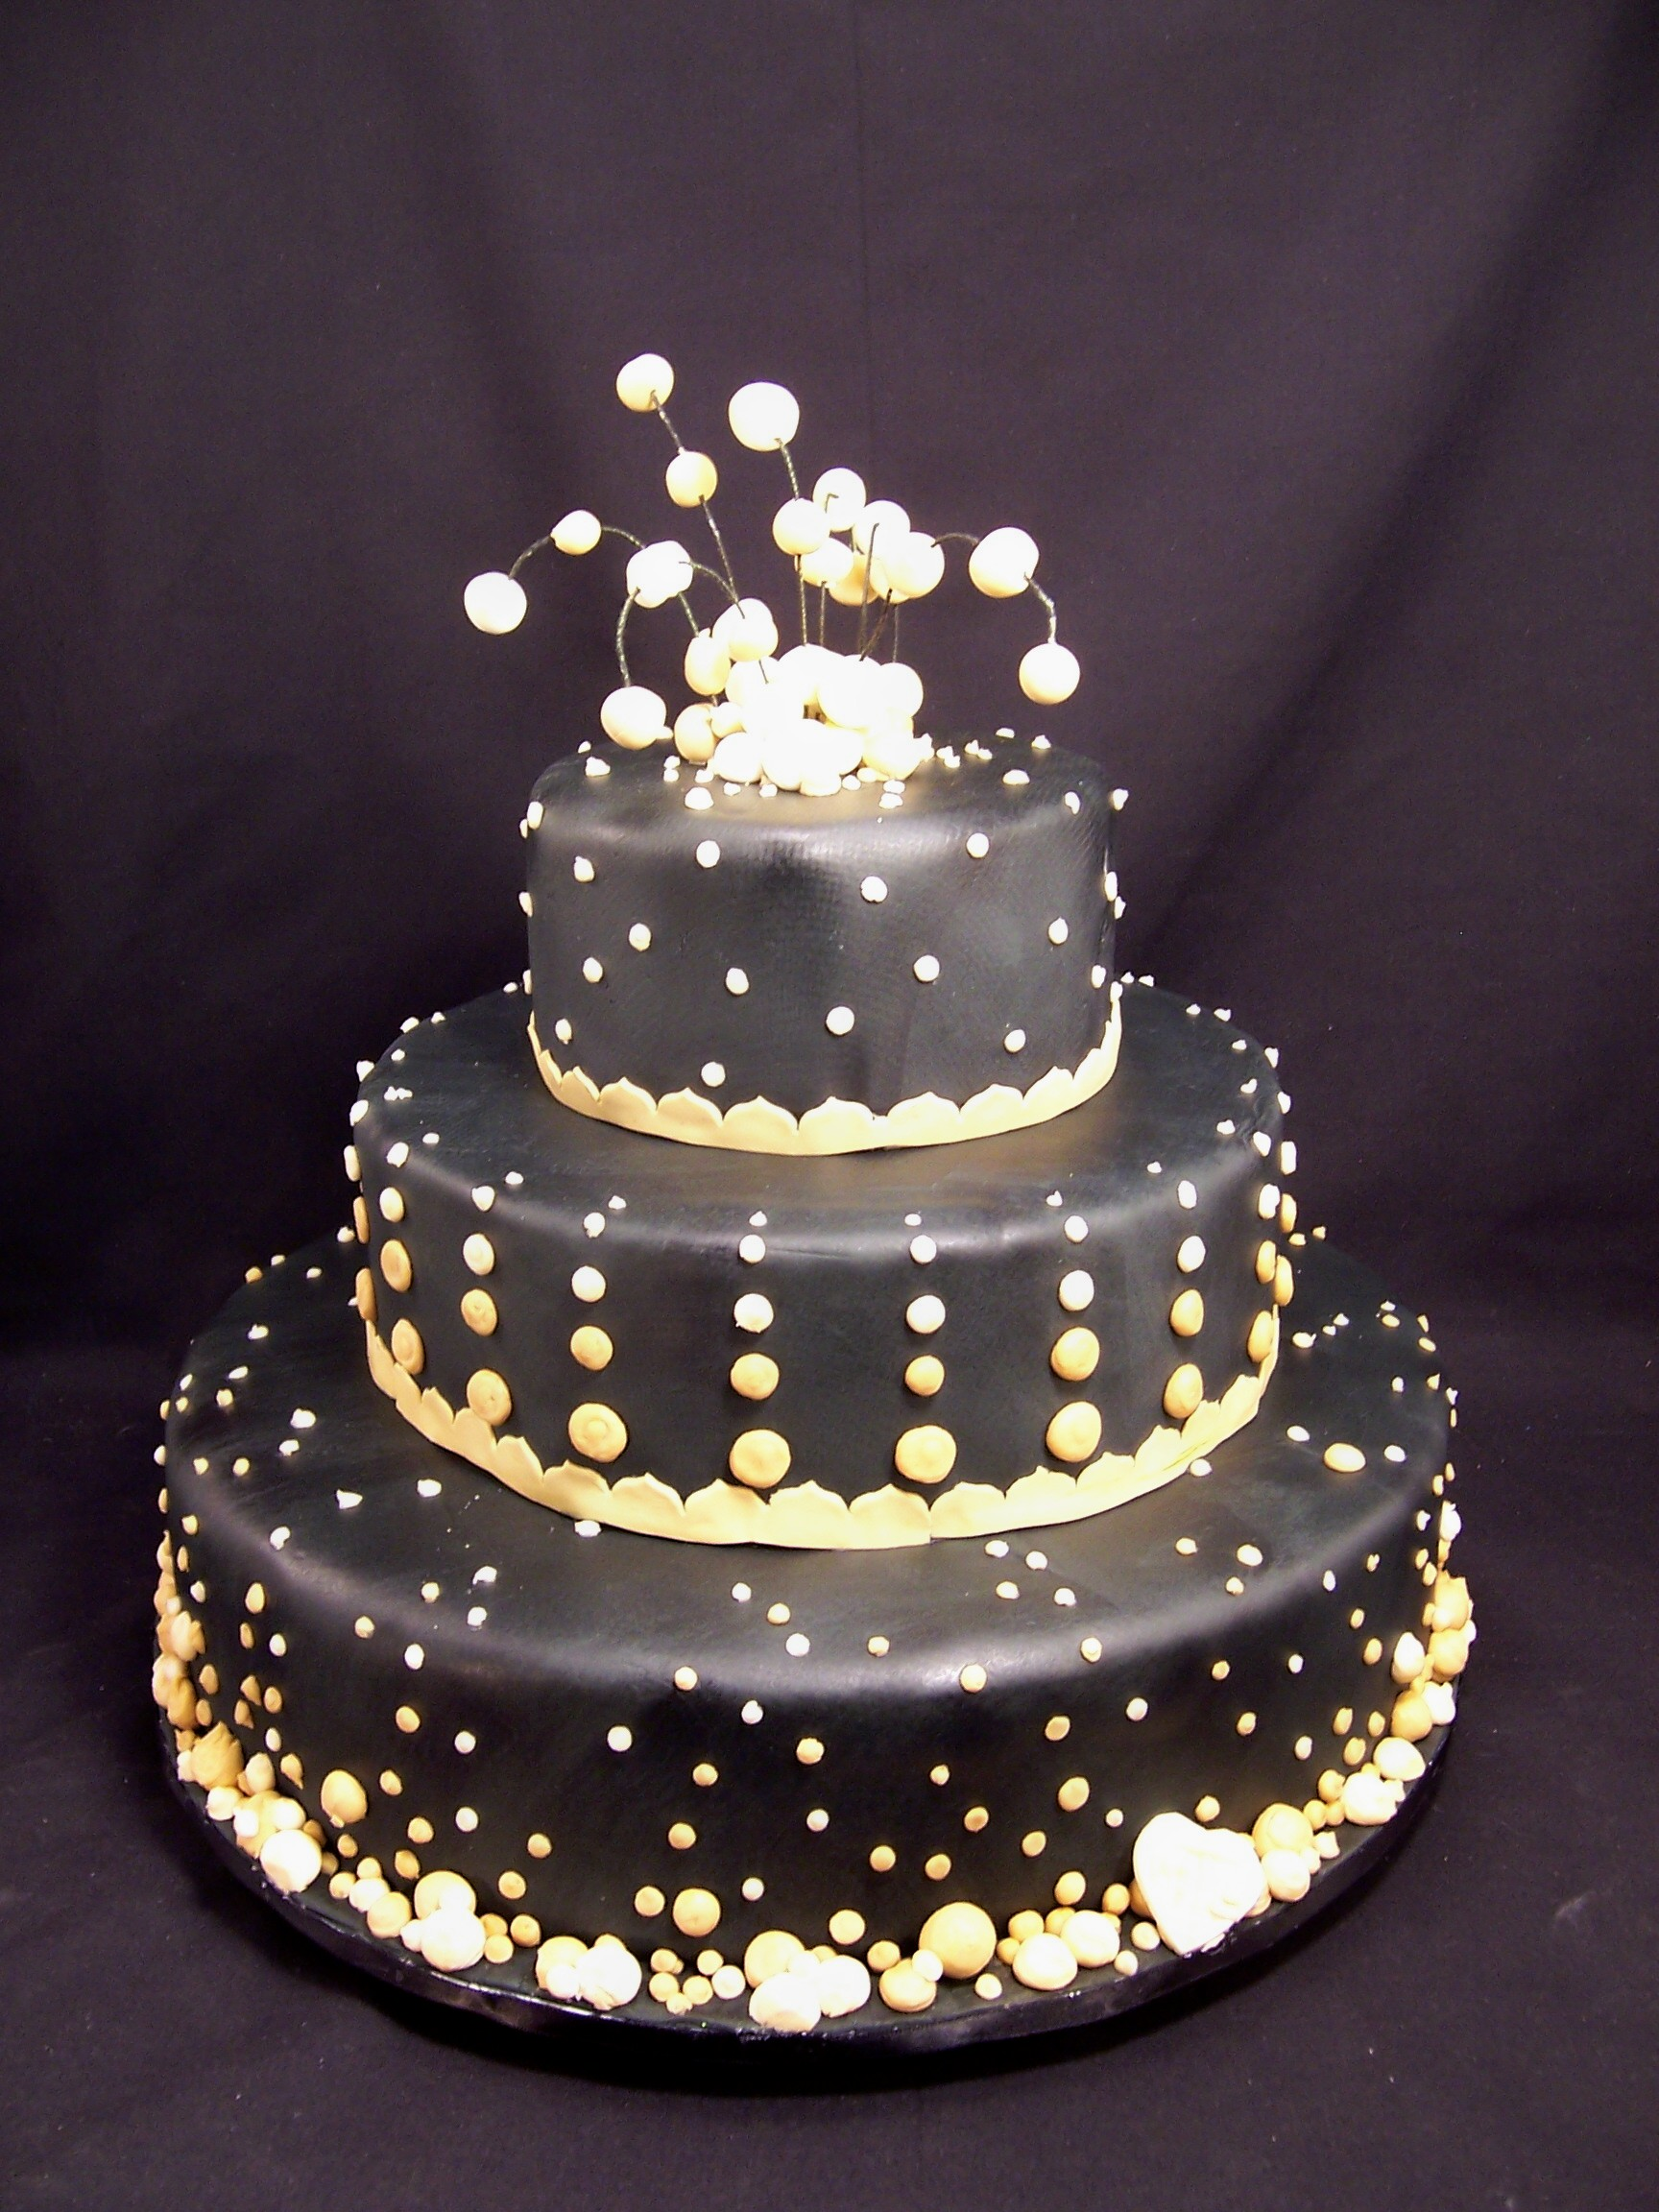 New Design For Wedding Cake : 301 Moved Permanently